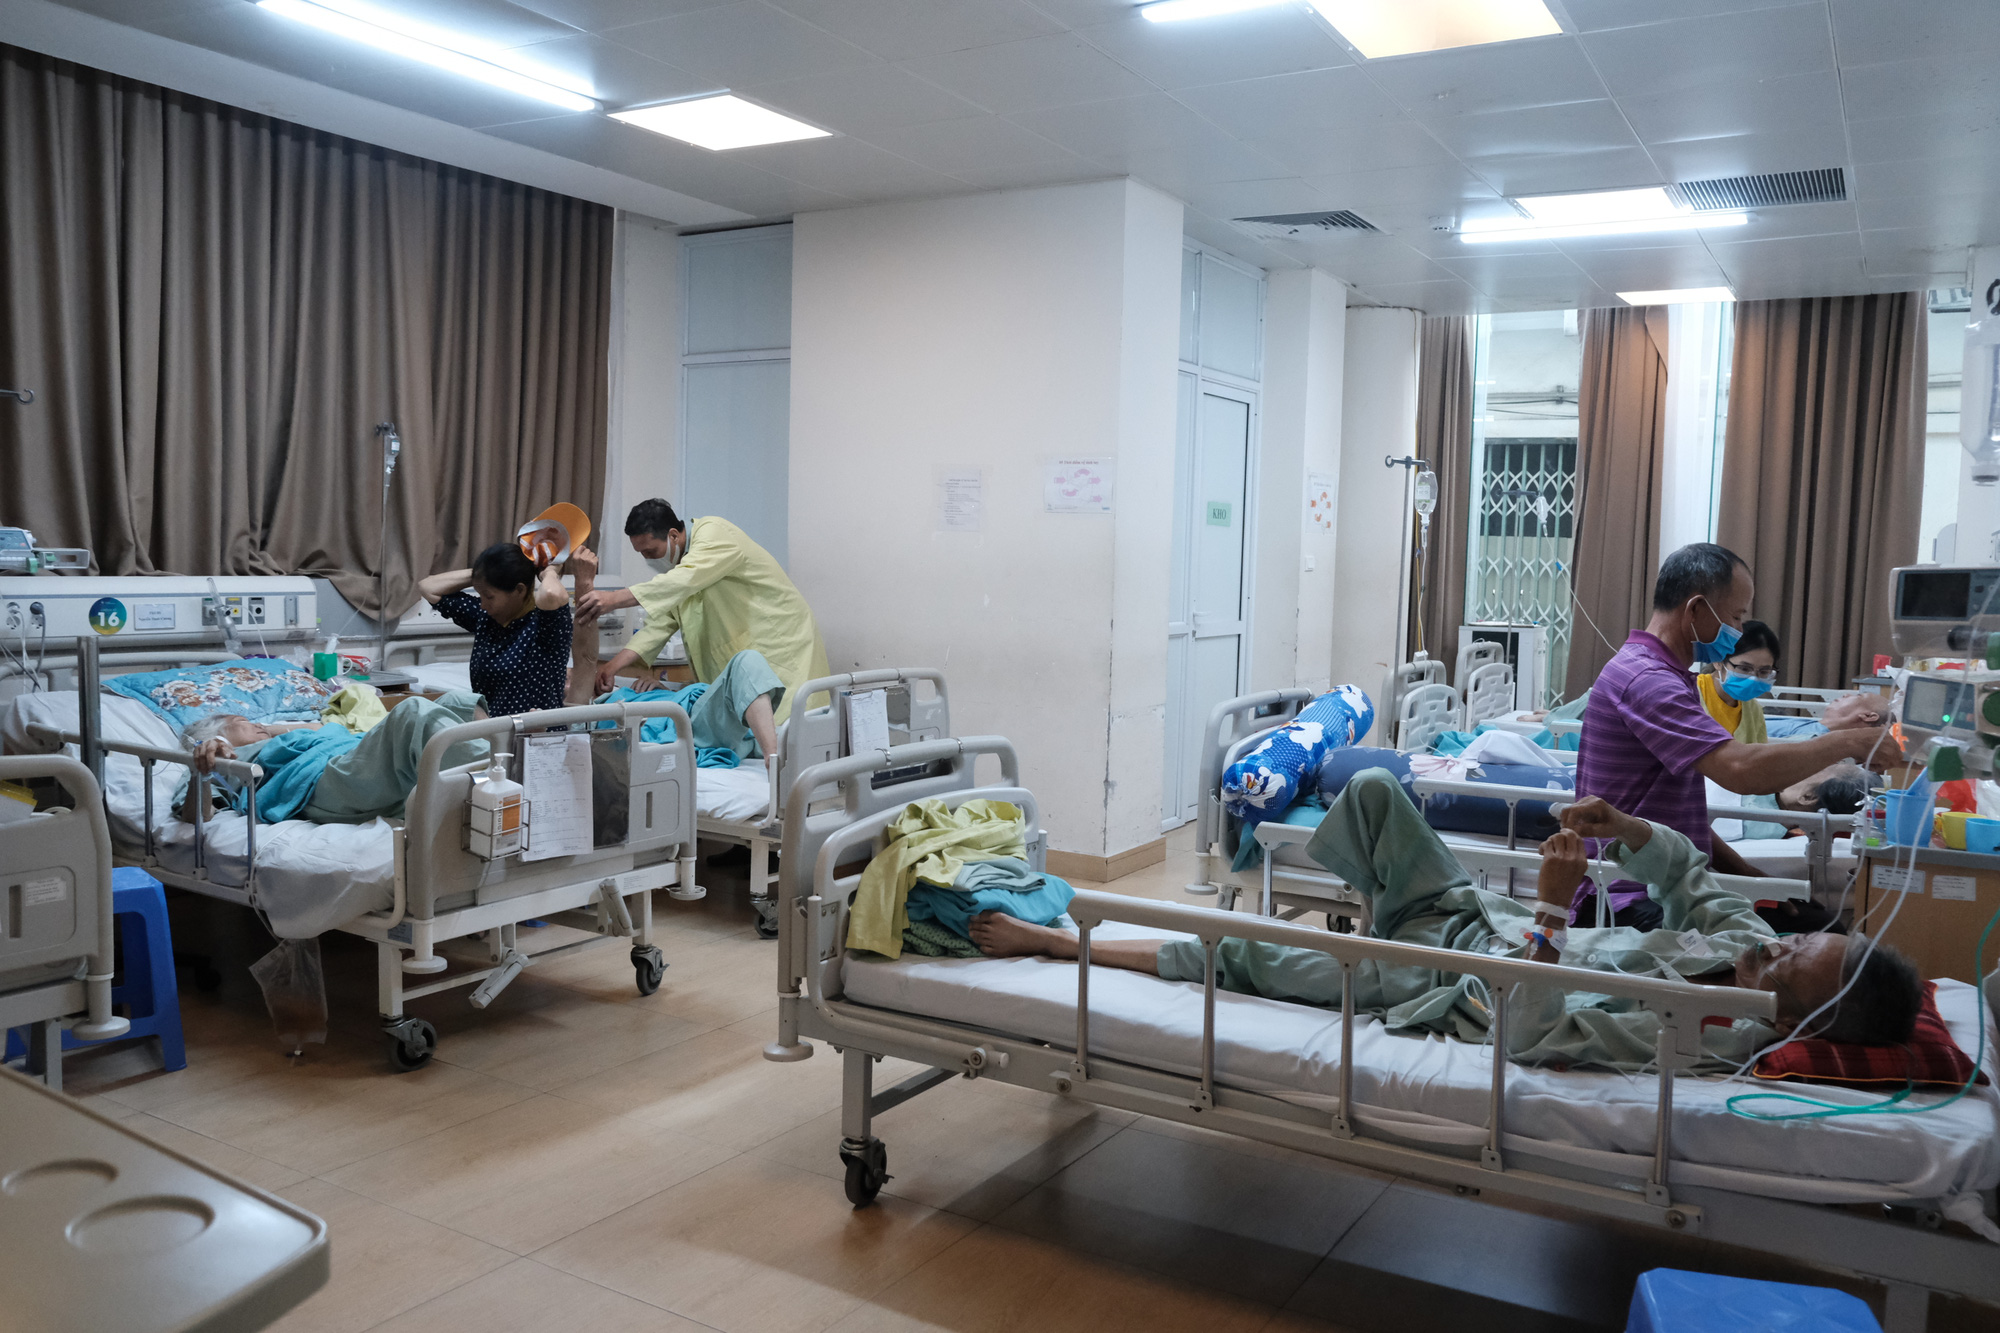 Elderly patients are treated at the National Geriatric Hospital in Hanoi, June 23, 2020. Photo: Mai Thuong / Tuoi Tre